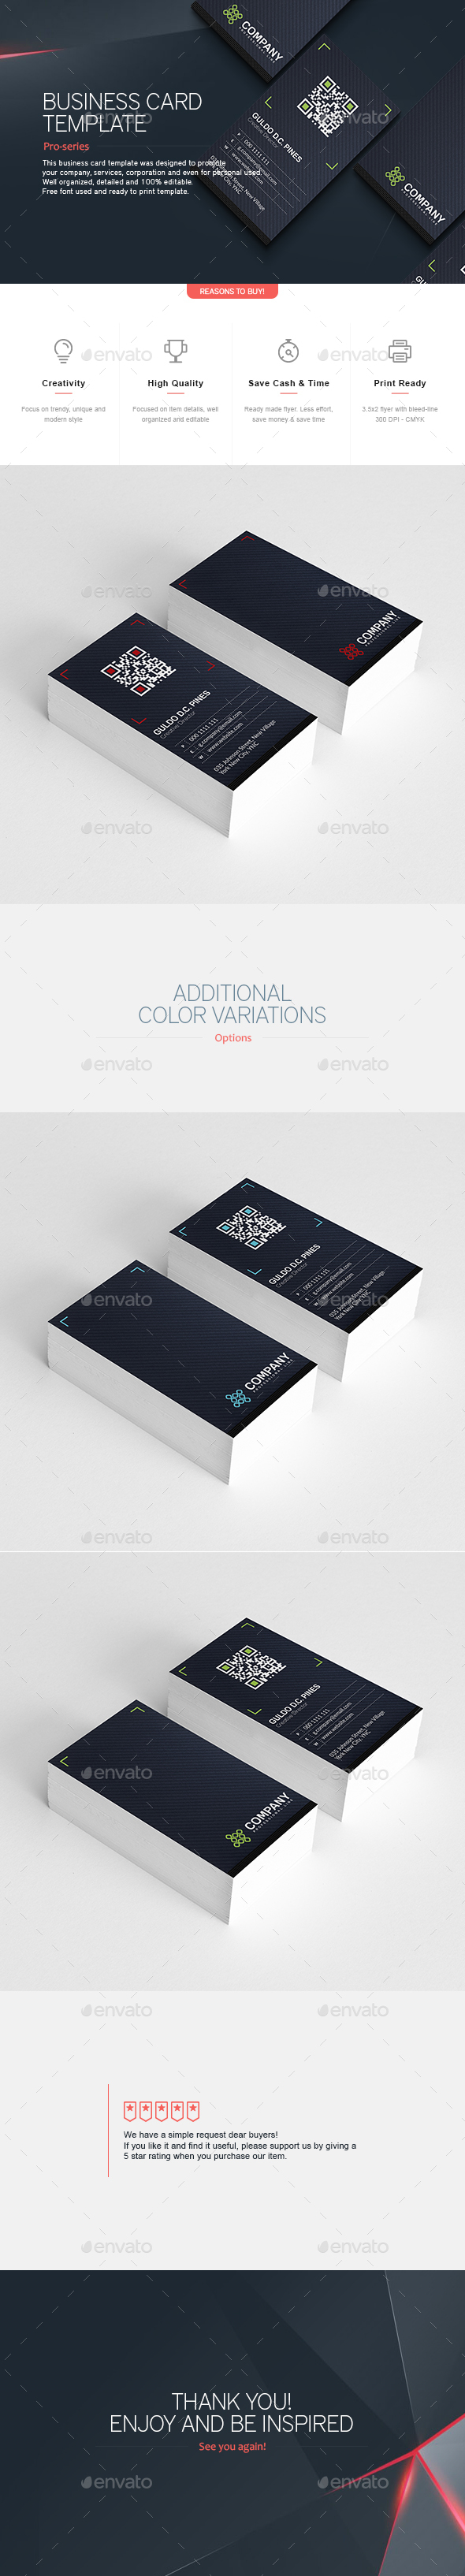 Business Card 16 - Corporate Business Cards